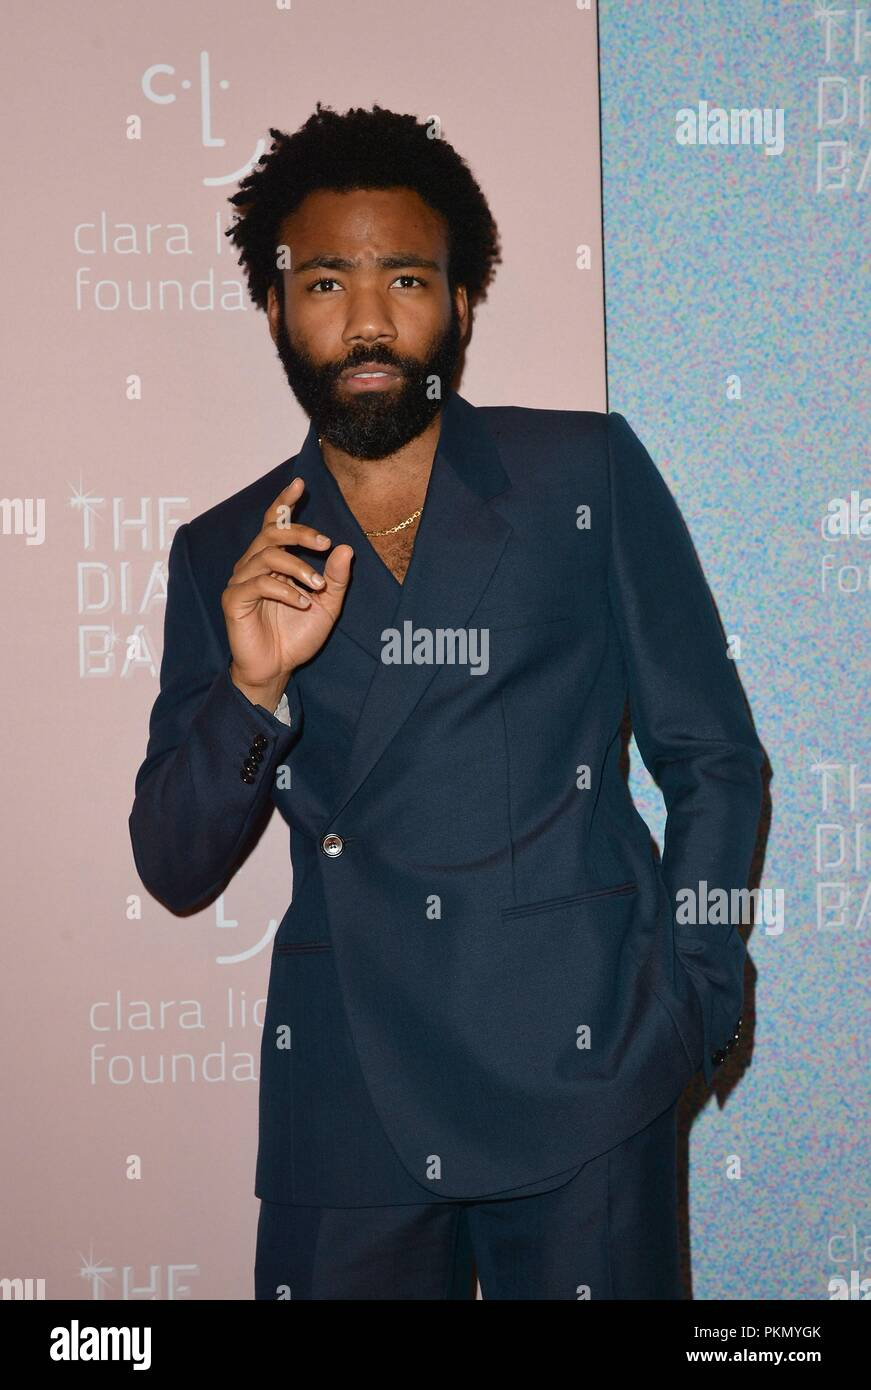 Donald Glover at arrivals for The Clara Lionel Foundation 4th Annual Diamond Ball, Cipriani Wall Street, New York, NY September 13, 2018. Photo By: Kristin Callahan/Everett Collection - Stock Image